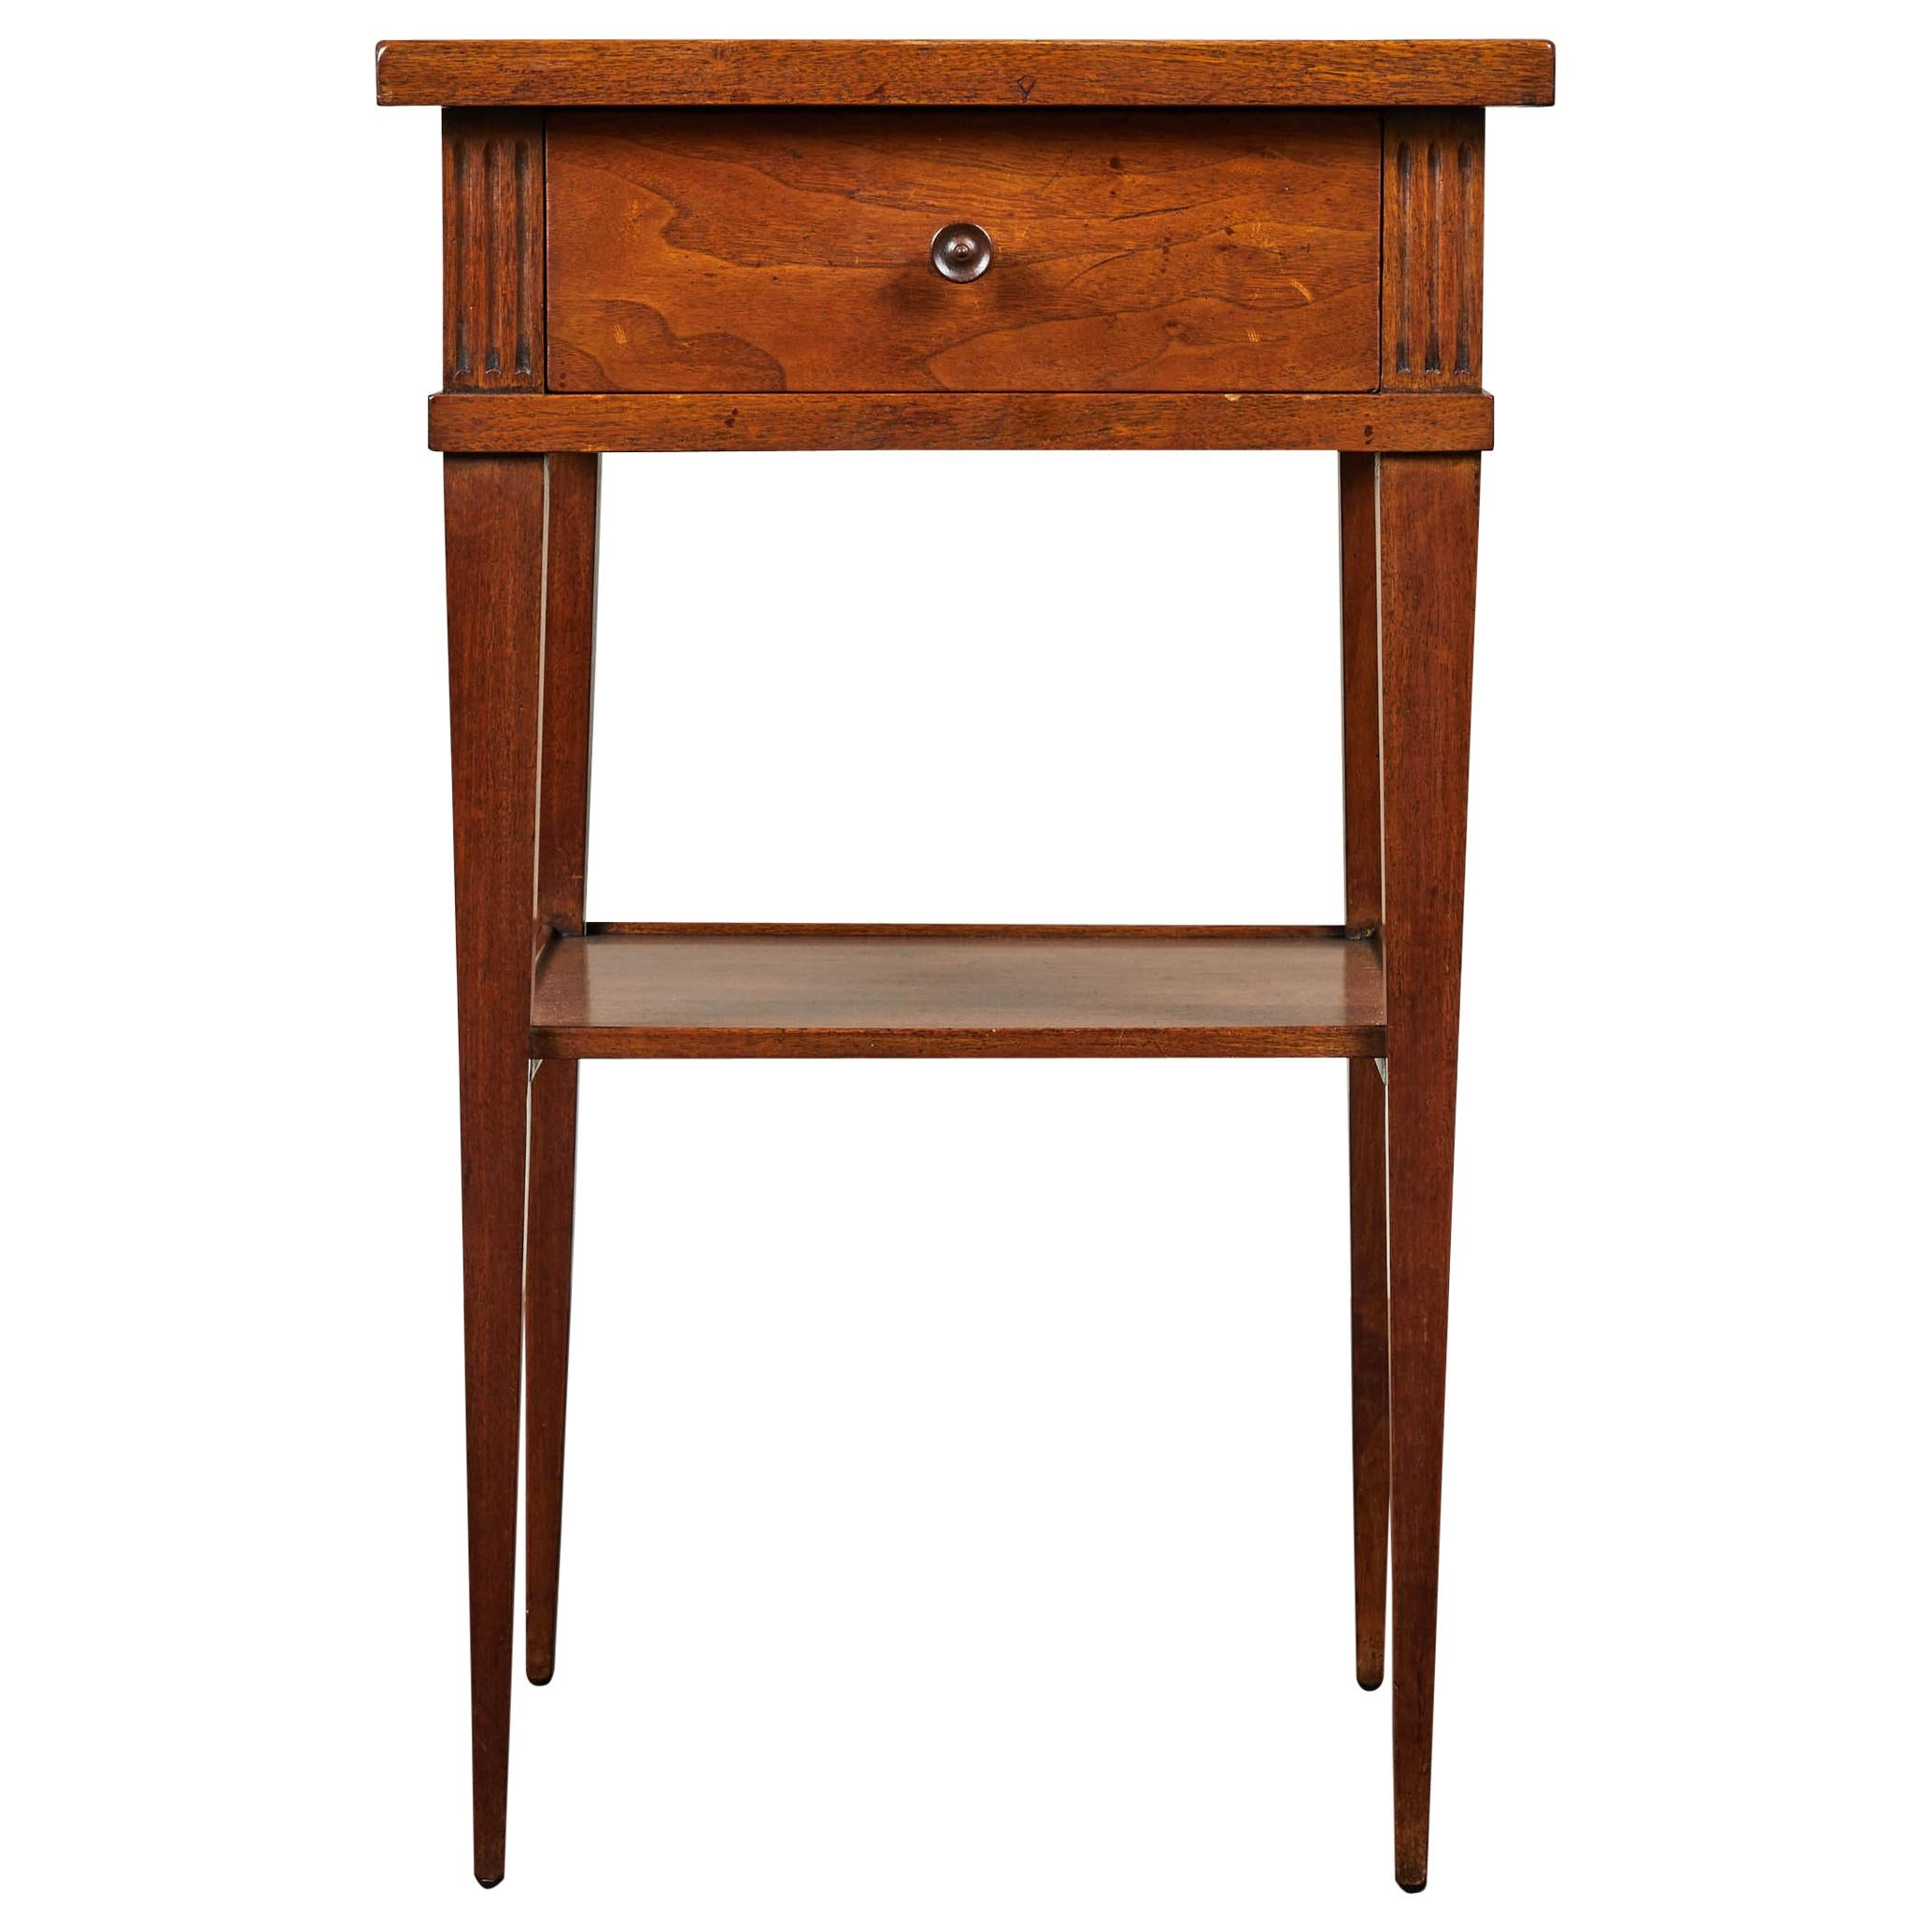 Mid-20th Century Small Walnut End Table with Single-Drawer